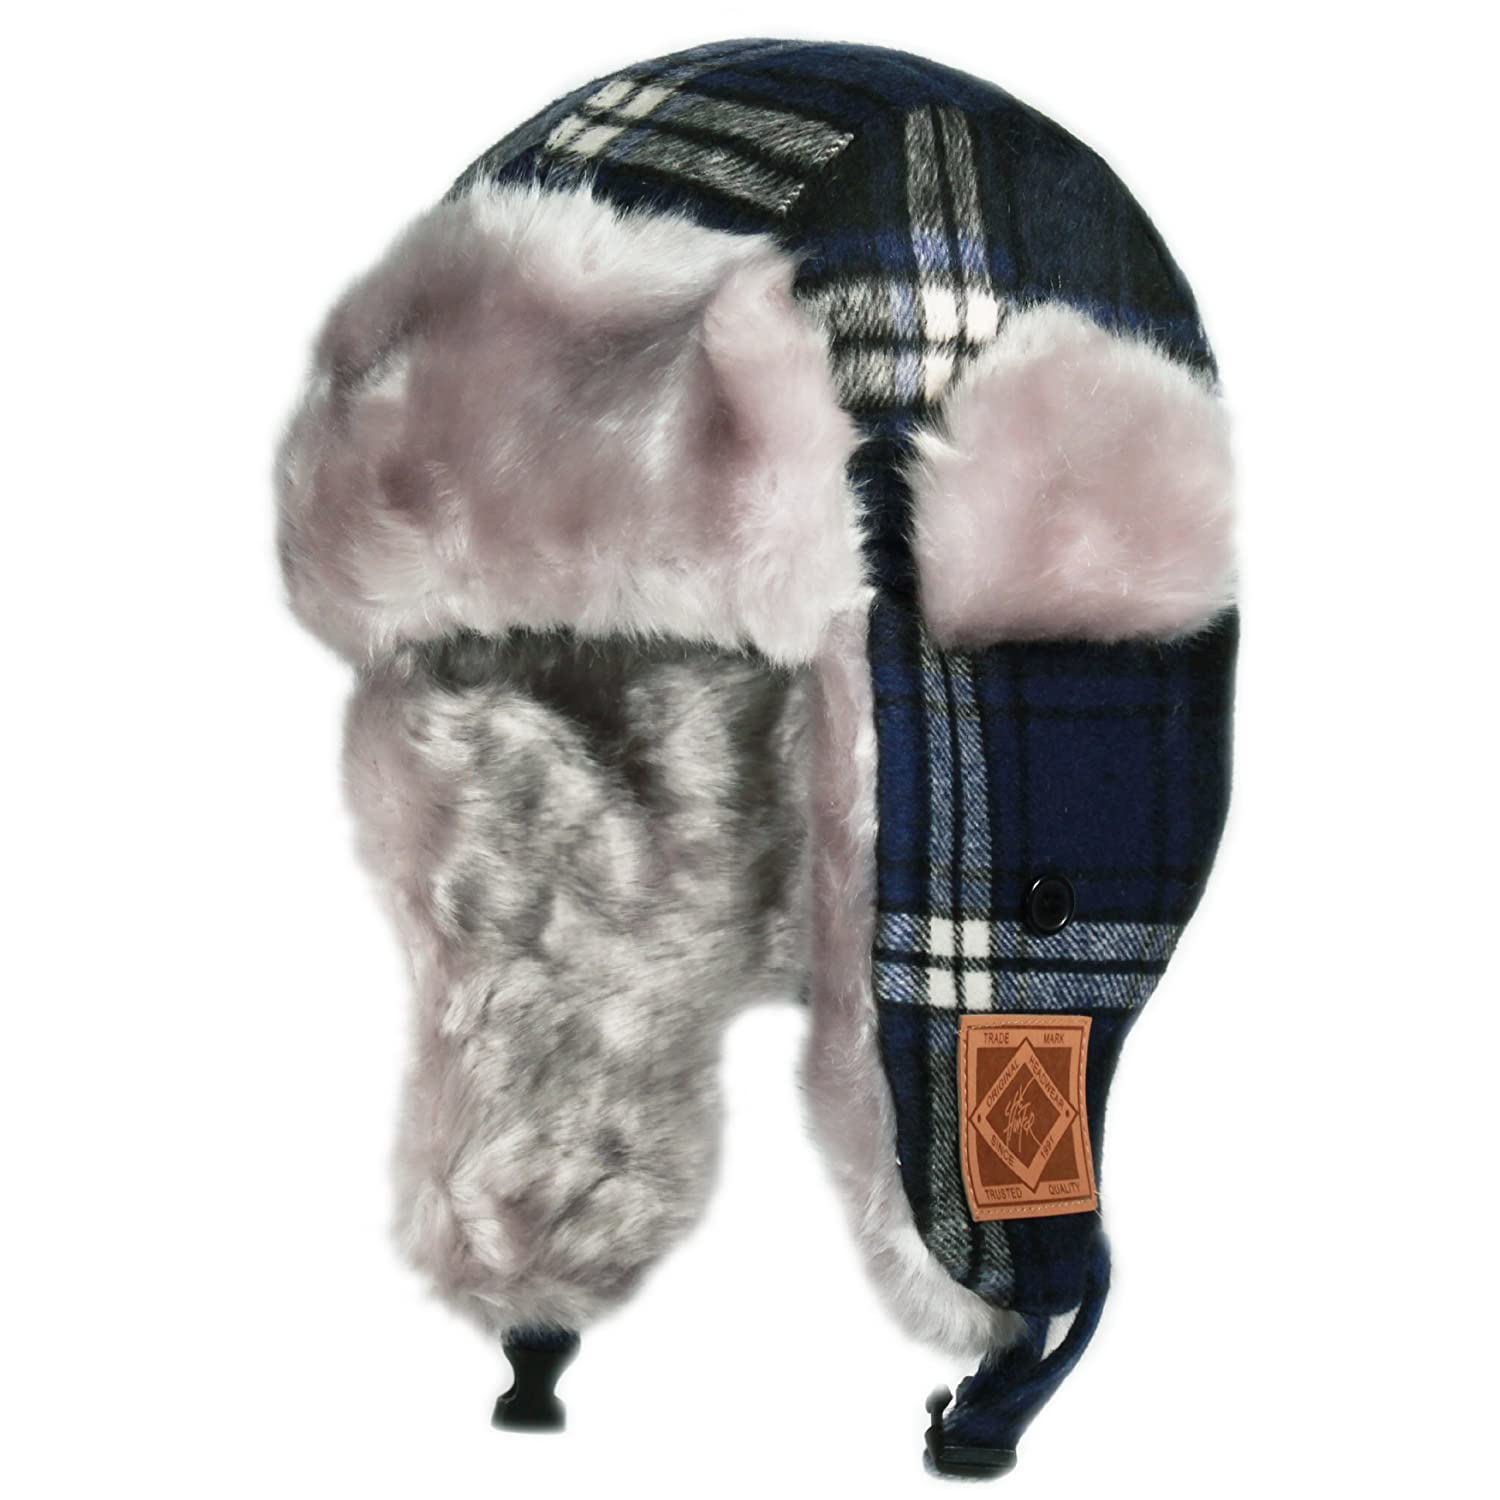 City Hunter Kw120 Premium Wool Plaid Kids Trapper Bomber Hat - Navy